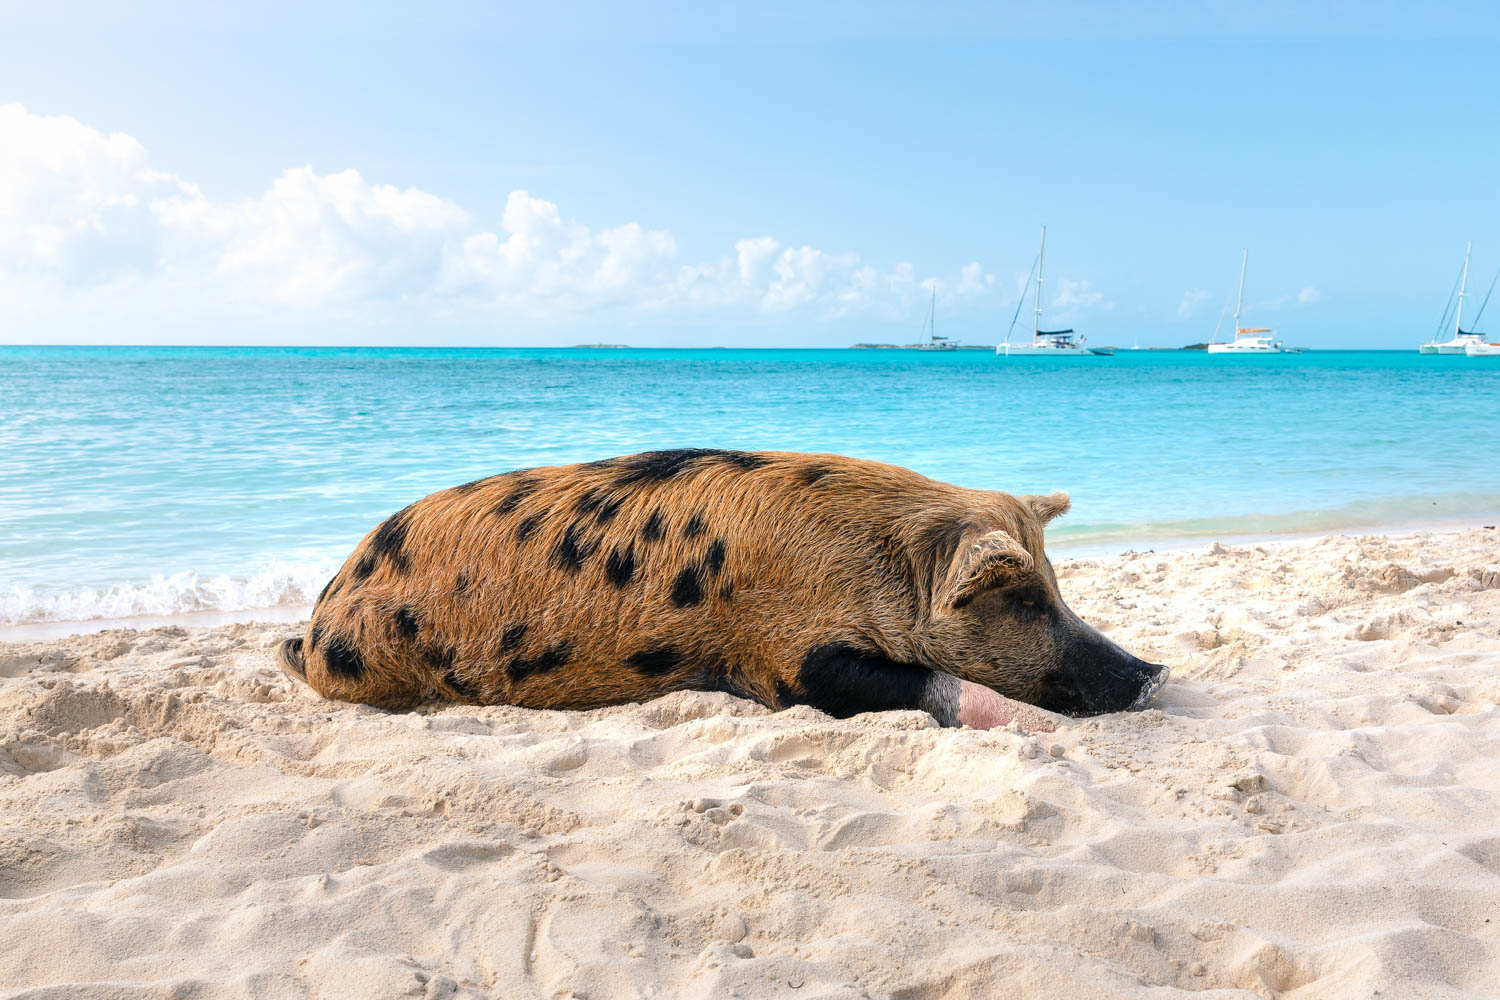 Island with Pigs Bahamas is called Big Major Cay and is located in the Exumas at Staniel Cay. Swimming with Pigs is the top Bahamas visitor attraction to Pig Beach.